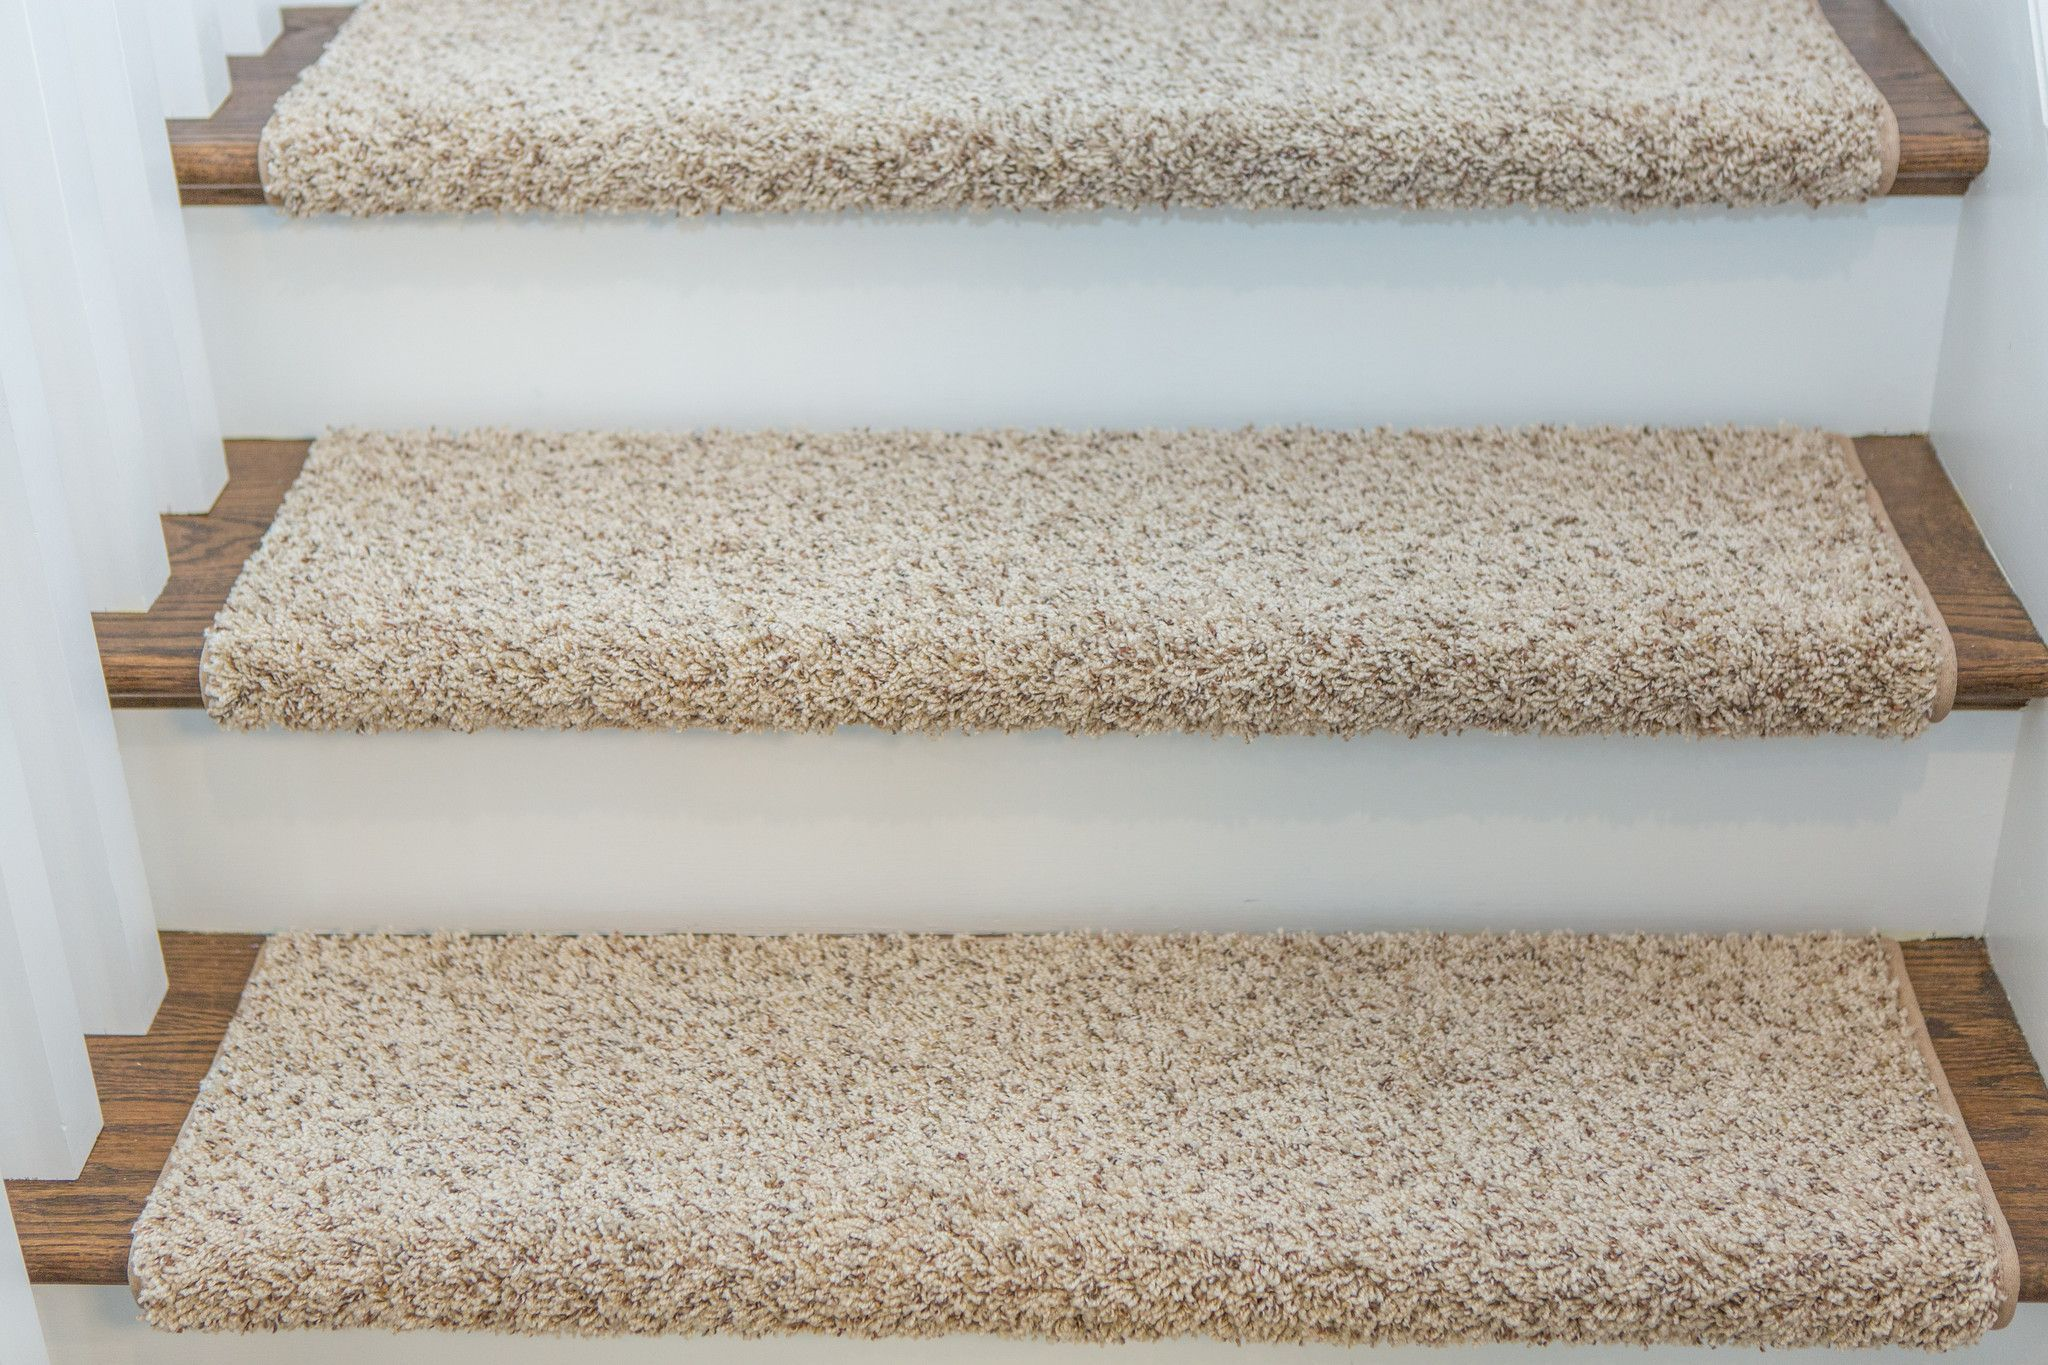 Windsor Adhesive Bullnose Carpet Stair Tread With Padding Bullnose Carpet Stair Treads Carpet Stair Treads Carpet Stairs